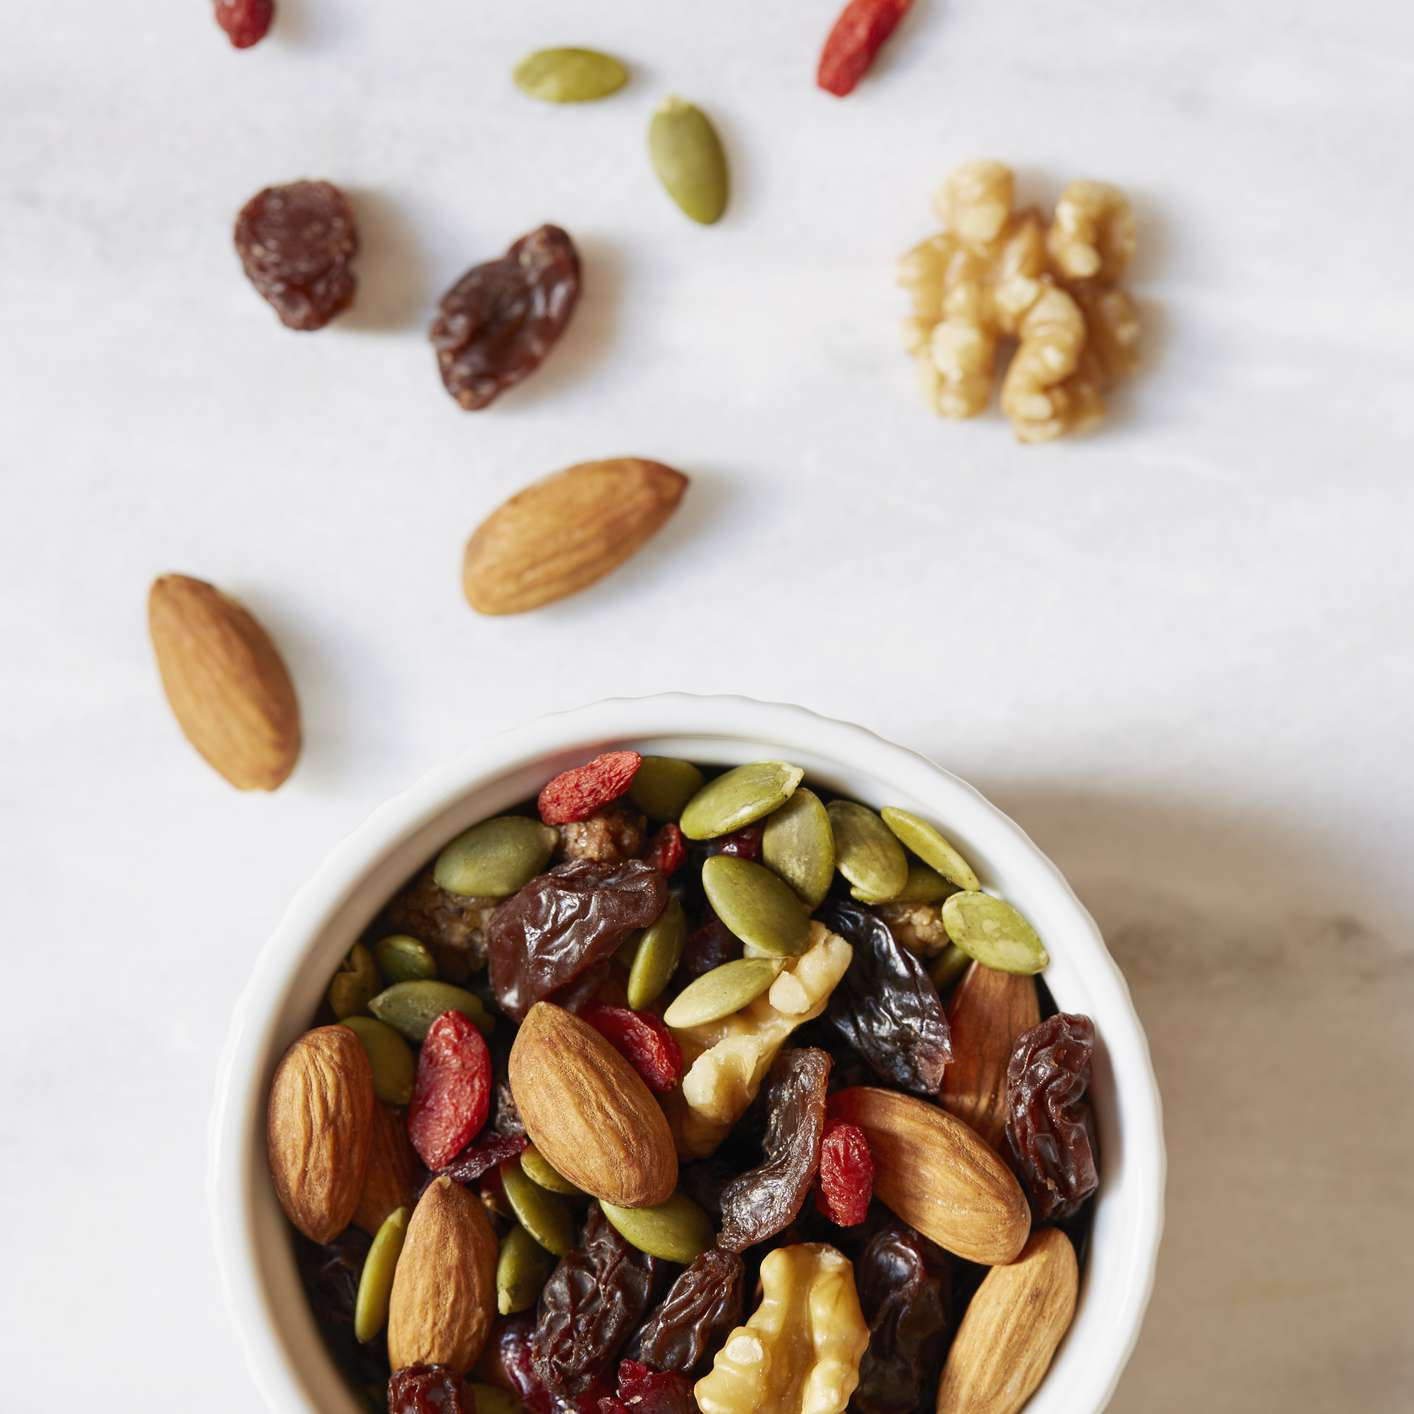 Bowl of nuts and seeds, including almonds and walnuts